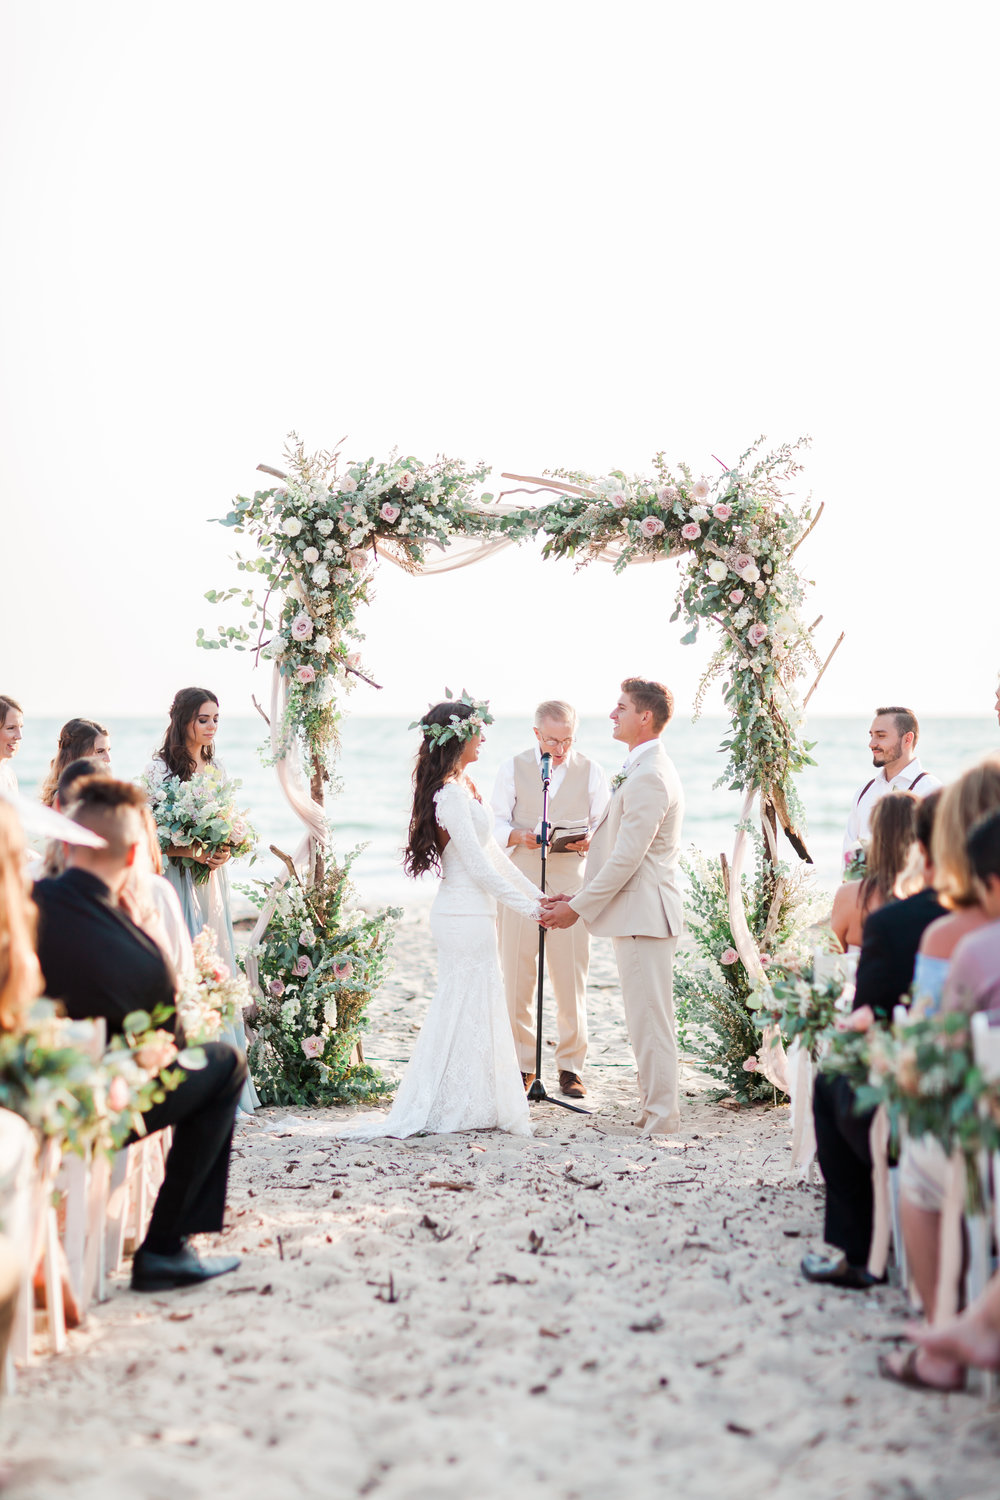 Destination Beach Wedding_Valorie Darling Photography-3157.jpg